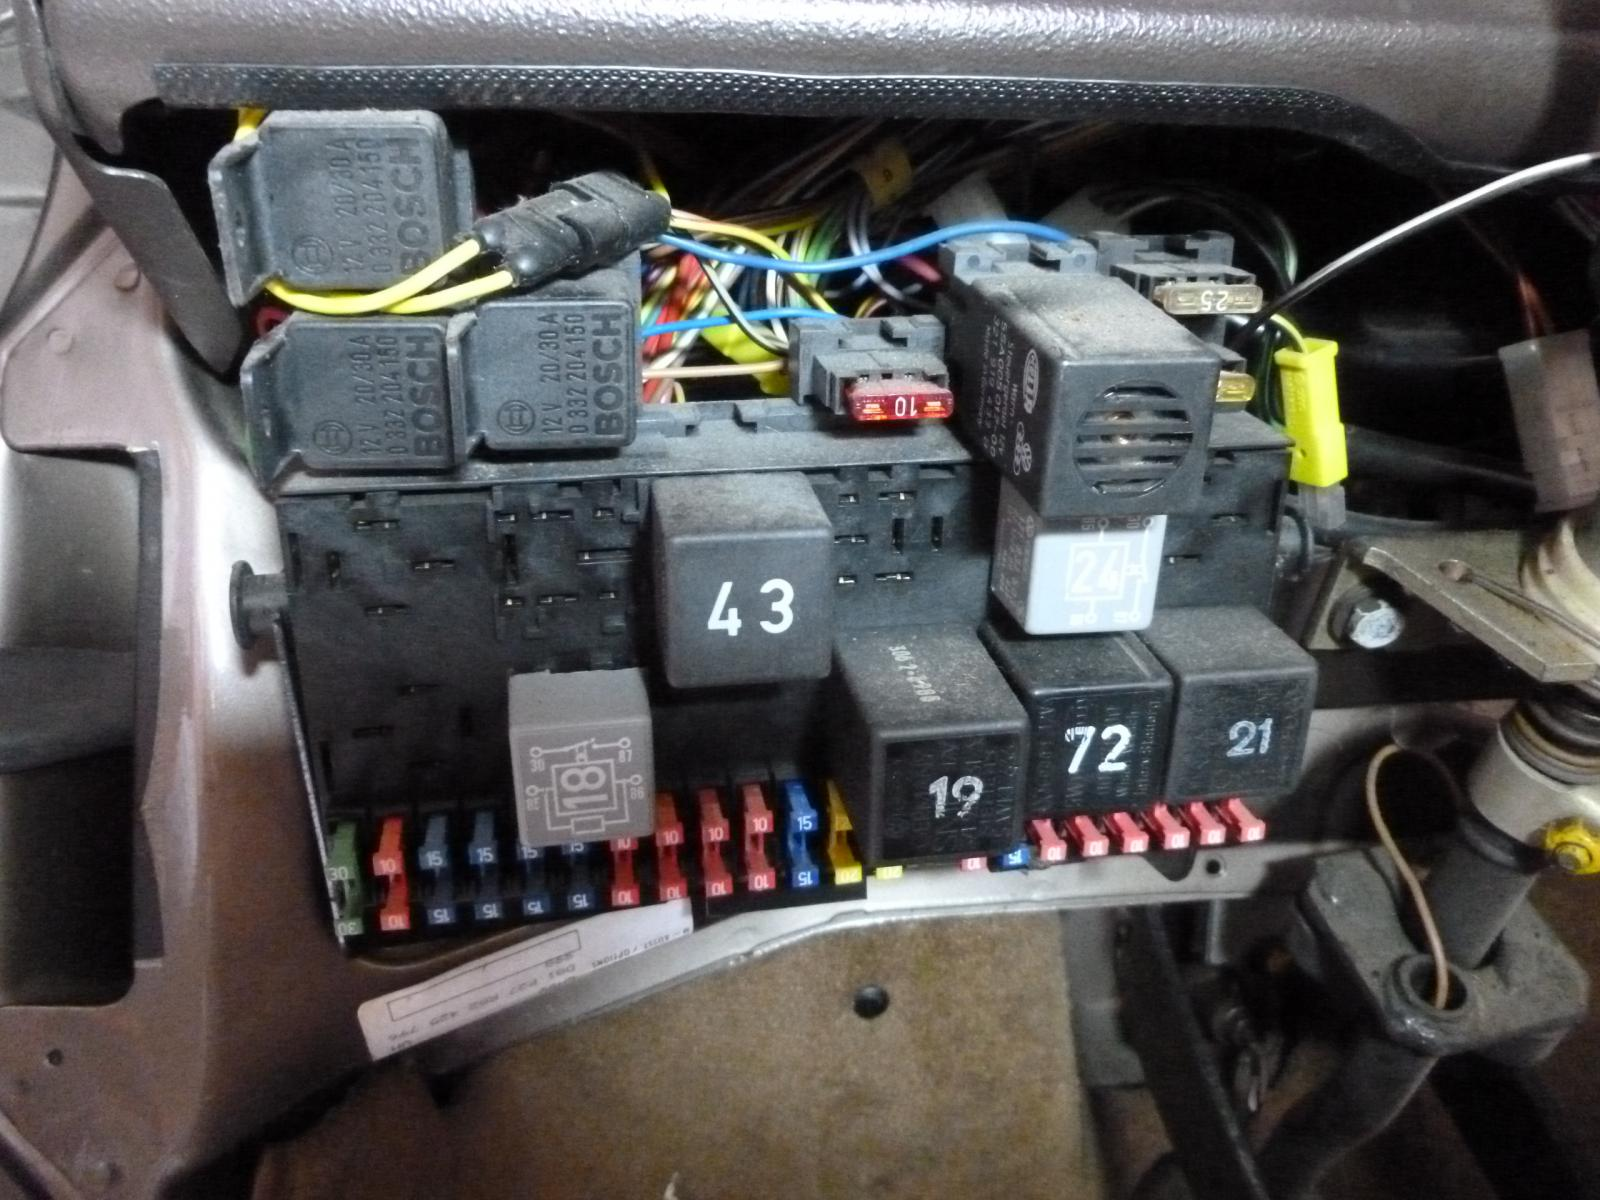 Vanagon View Topic Air Conditioner System 84 Vw Rabbit Fuse Box Power Image May Have Been Reduced In Size Click To Fullscreen